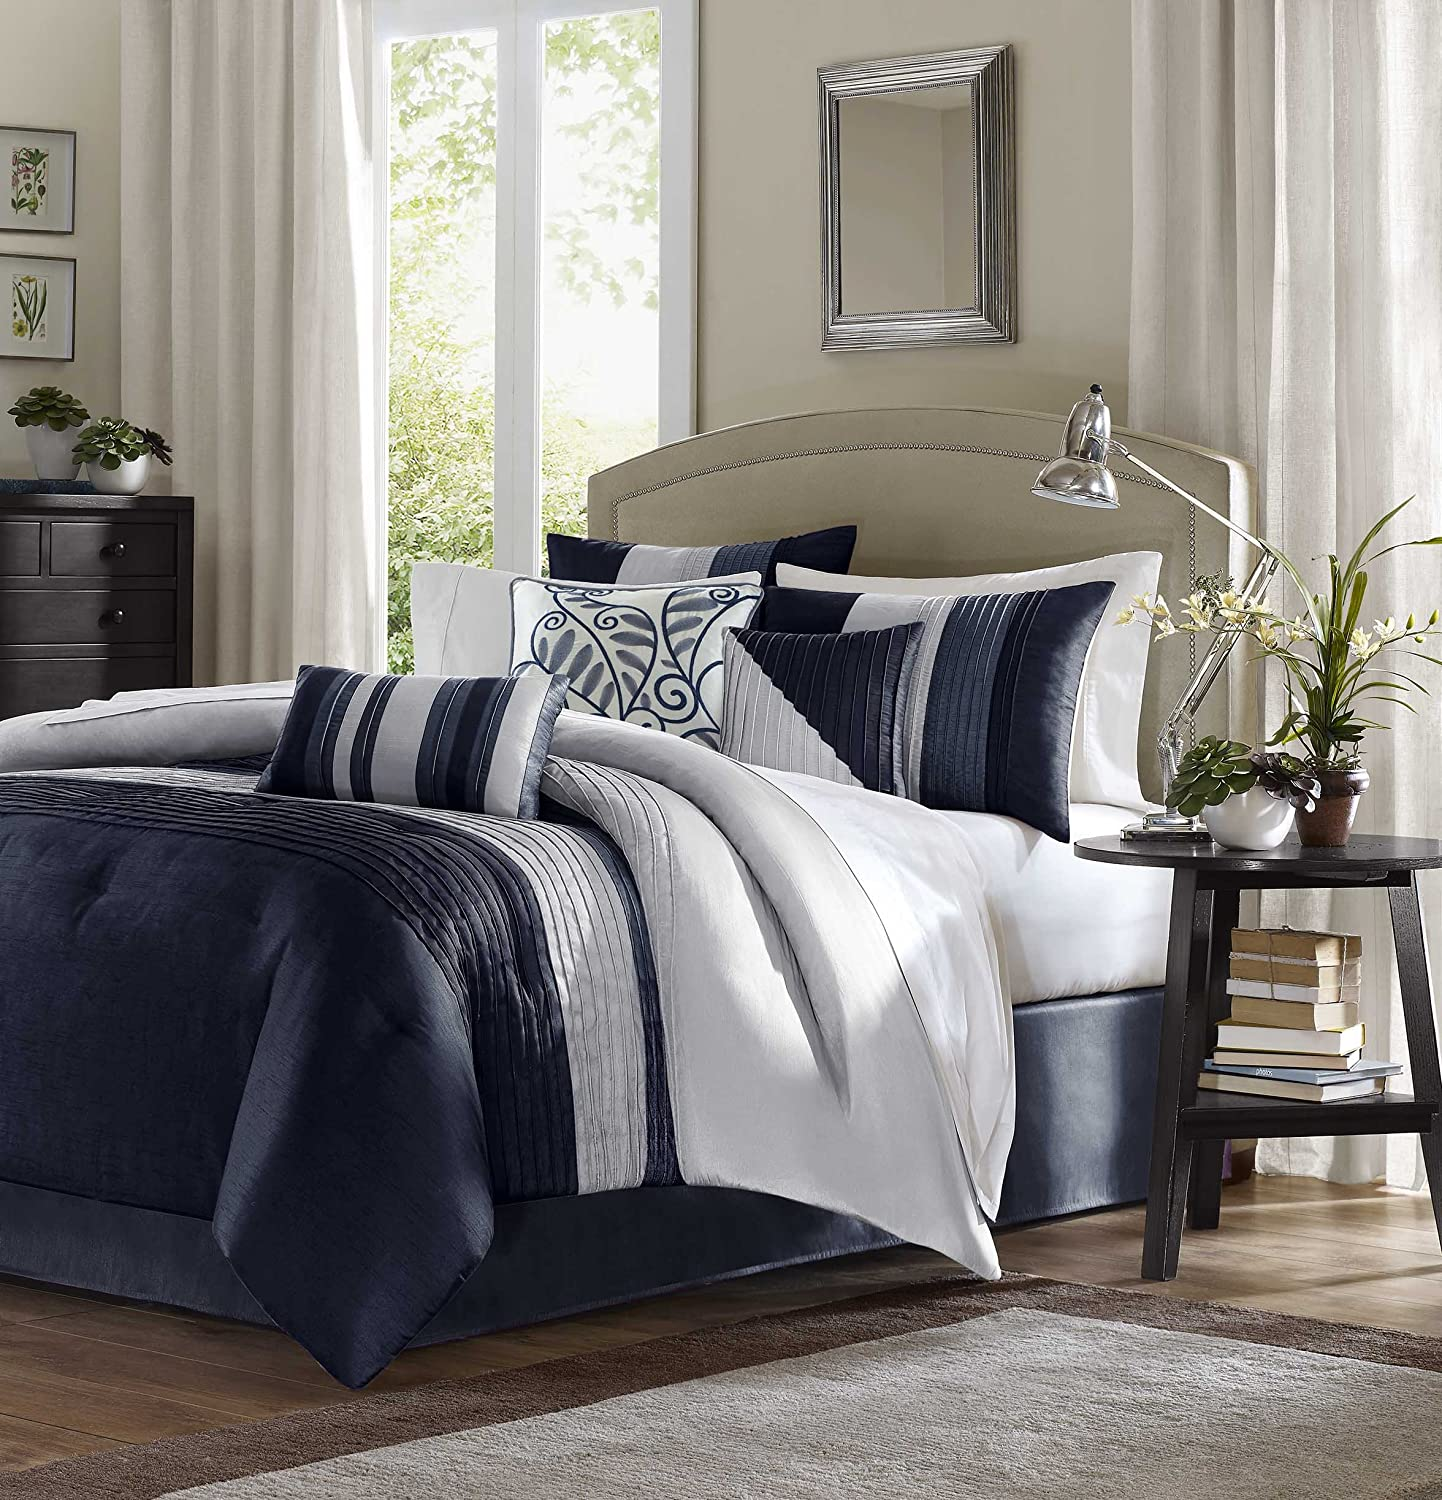 Madison Park Amherst King Size Bed Comforter Set Bed in A Bag - Navy, Light Grey, Pieced Stripes – 7 Pieces Bedding Sets – Ultra Soft Microfiber Bedroom Comforters